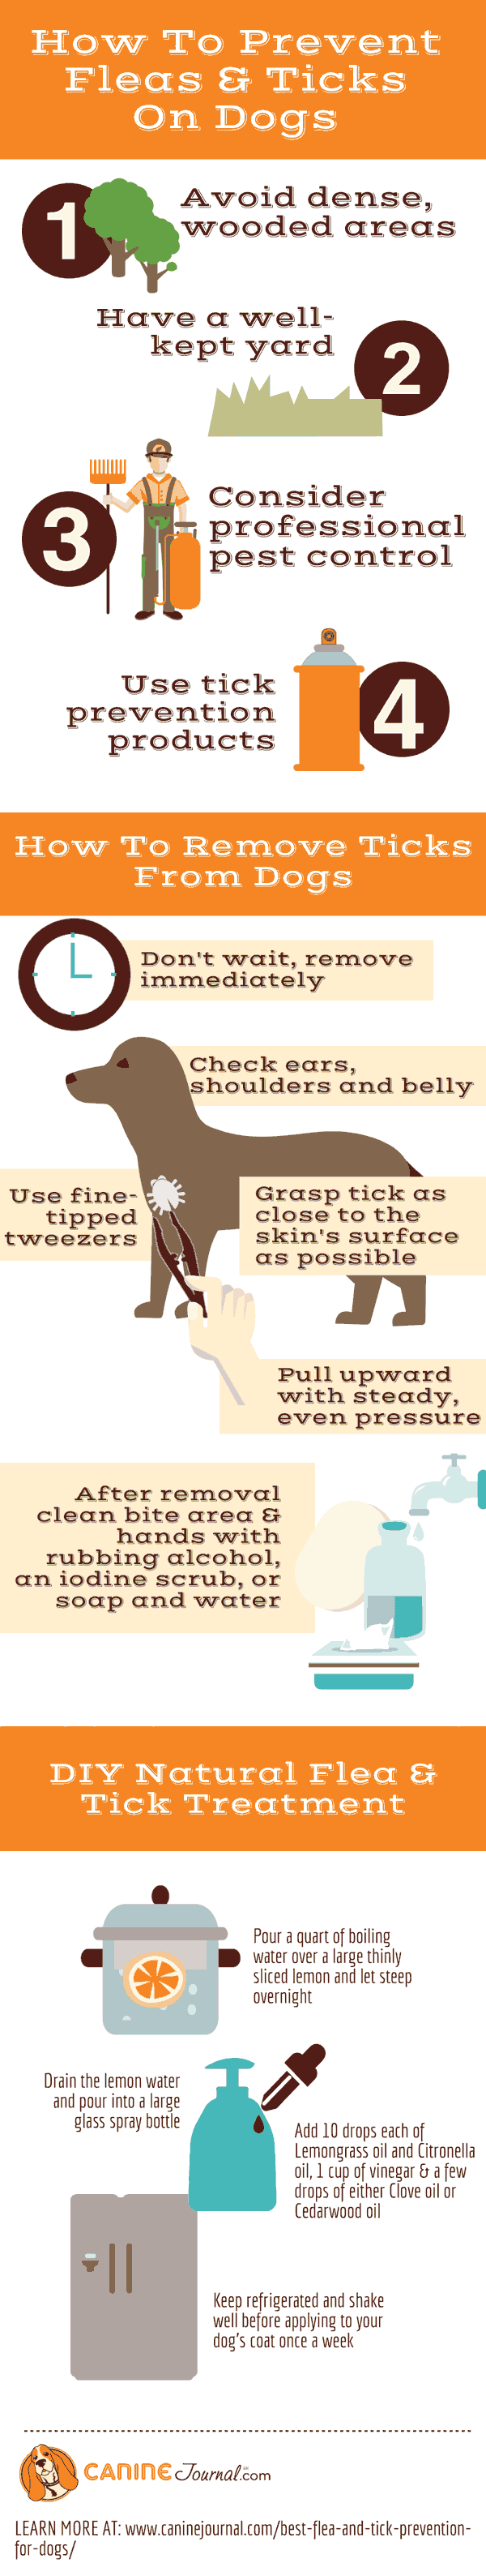 Flea Prevention Infographic